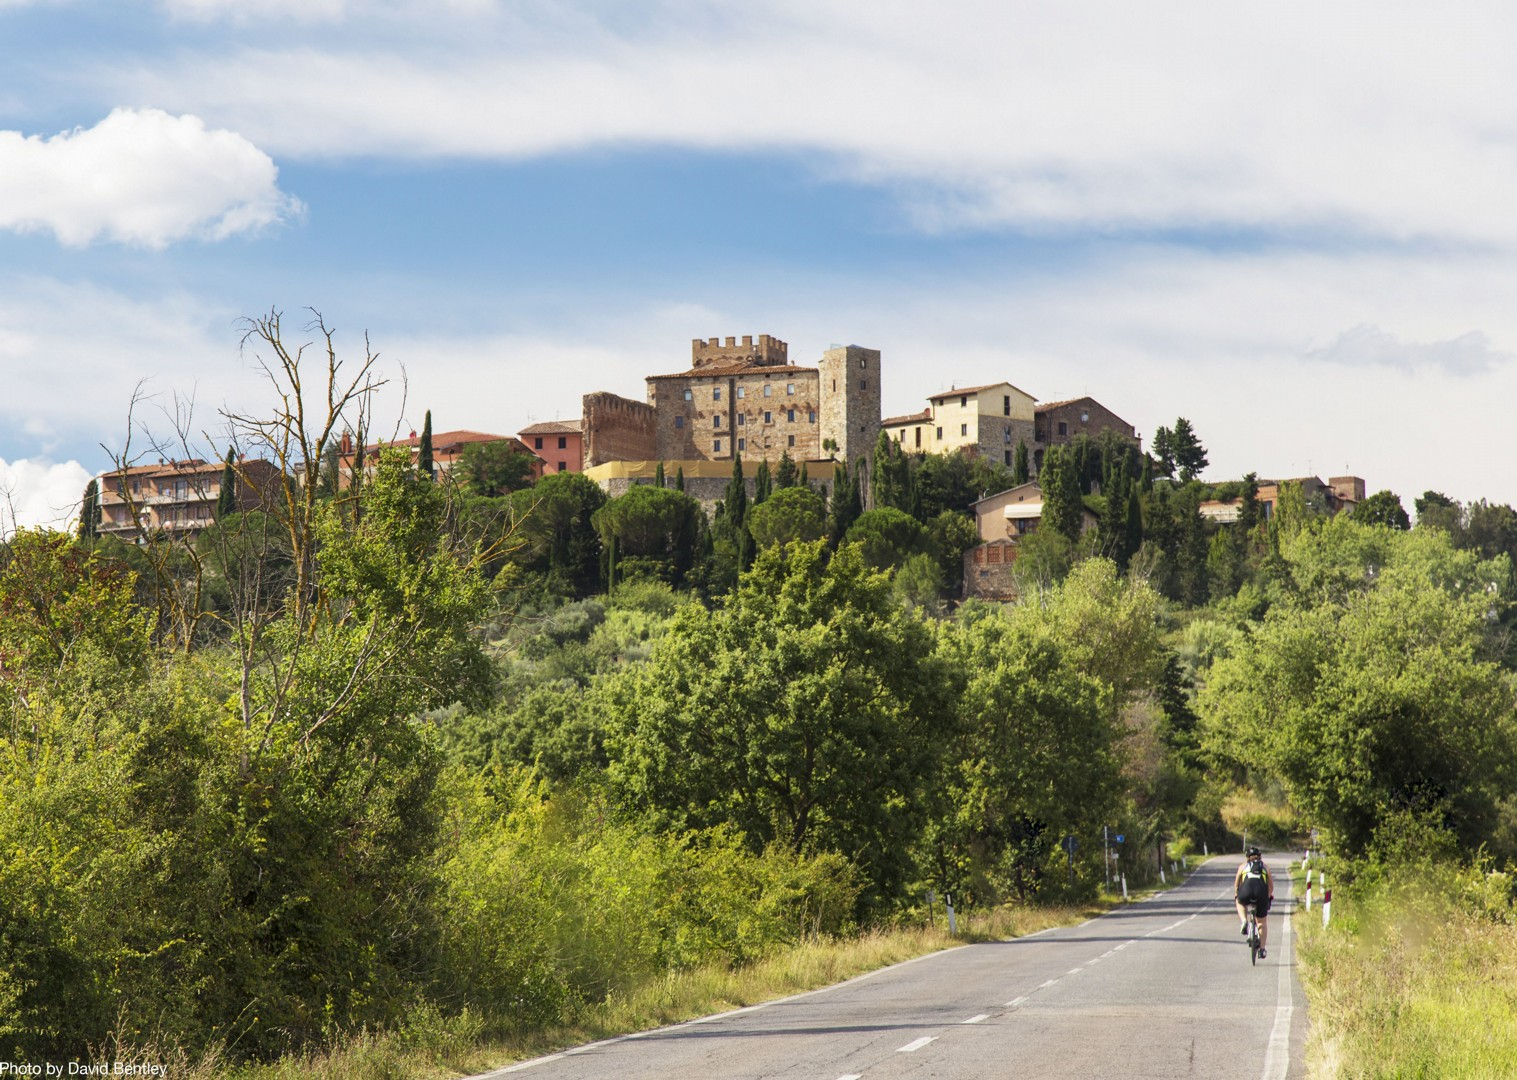 road-cycling-in-tuscany-italy.jpg - Italy - Tuscany Tourer - Guided Road Cycling Holiday - Road Cycling